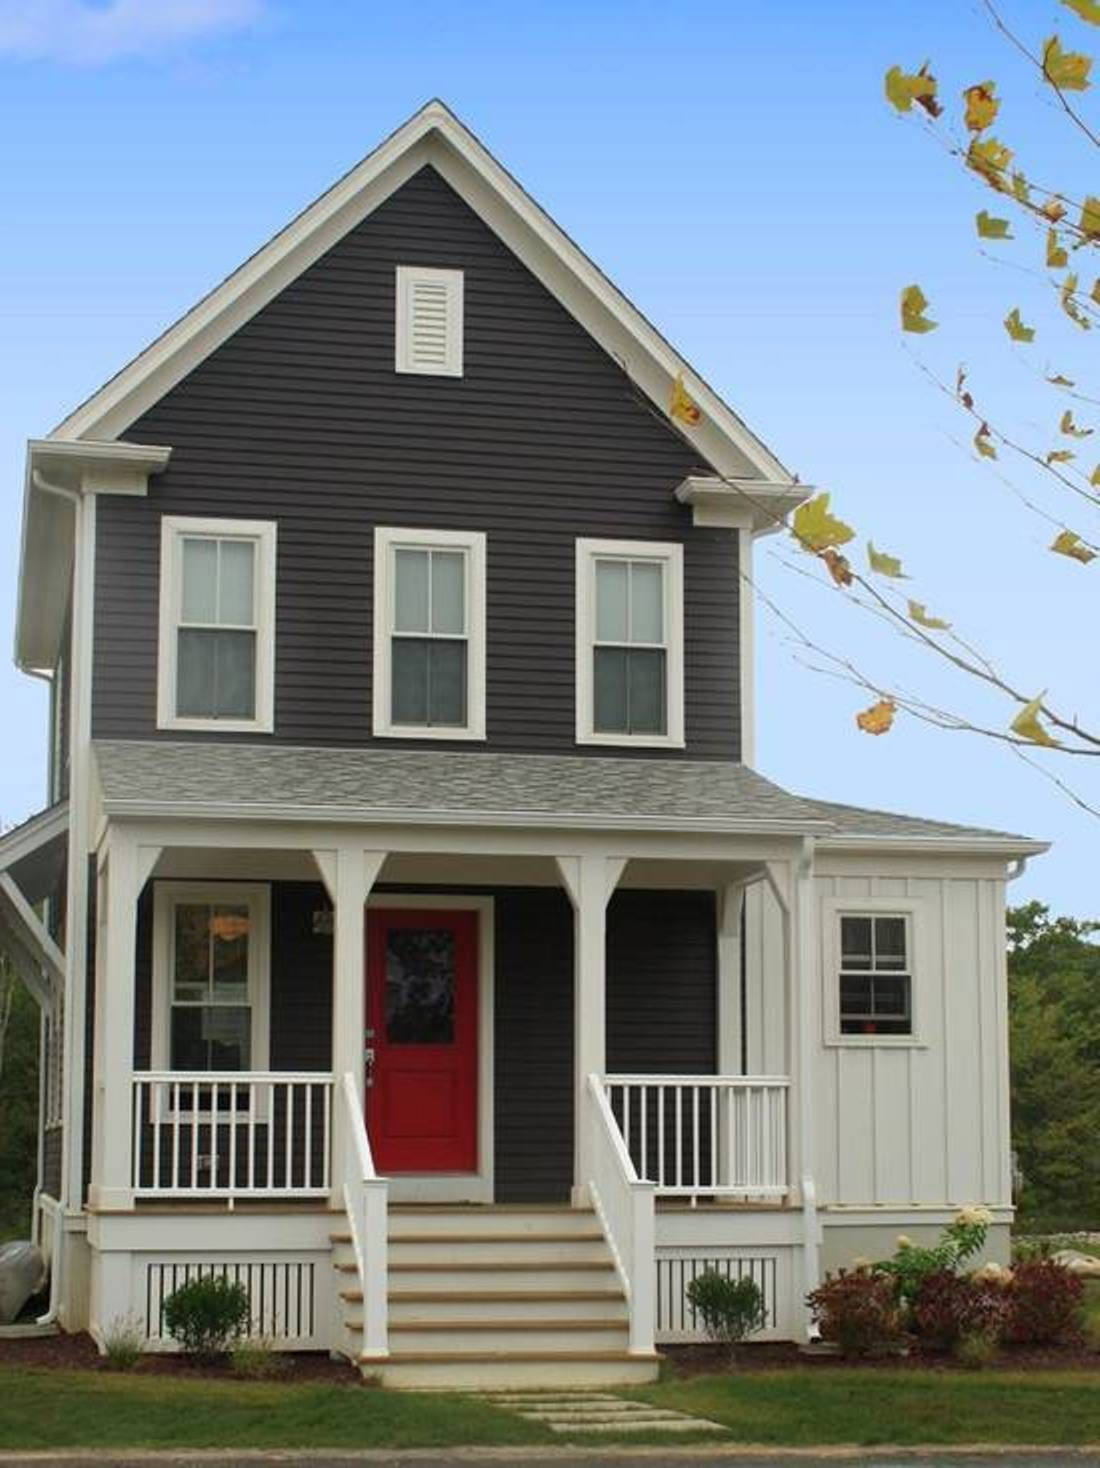 Amazing Exterior House Colors Hot Trends Homes Fast Turnaround New Largest Home Design Picture Inspirations Pitcheantrous